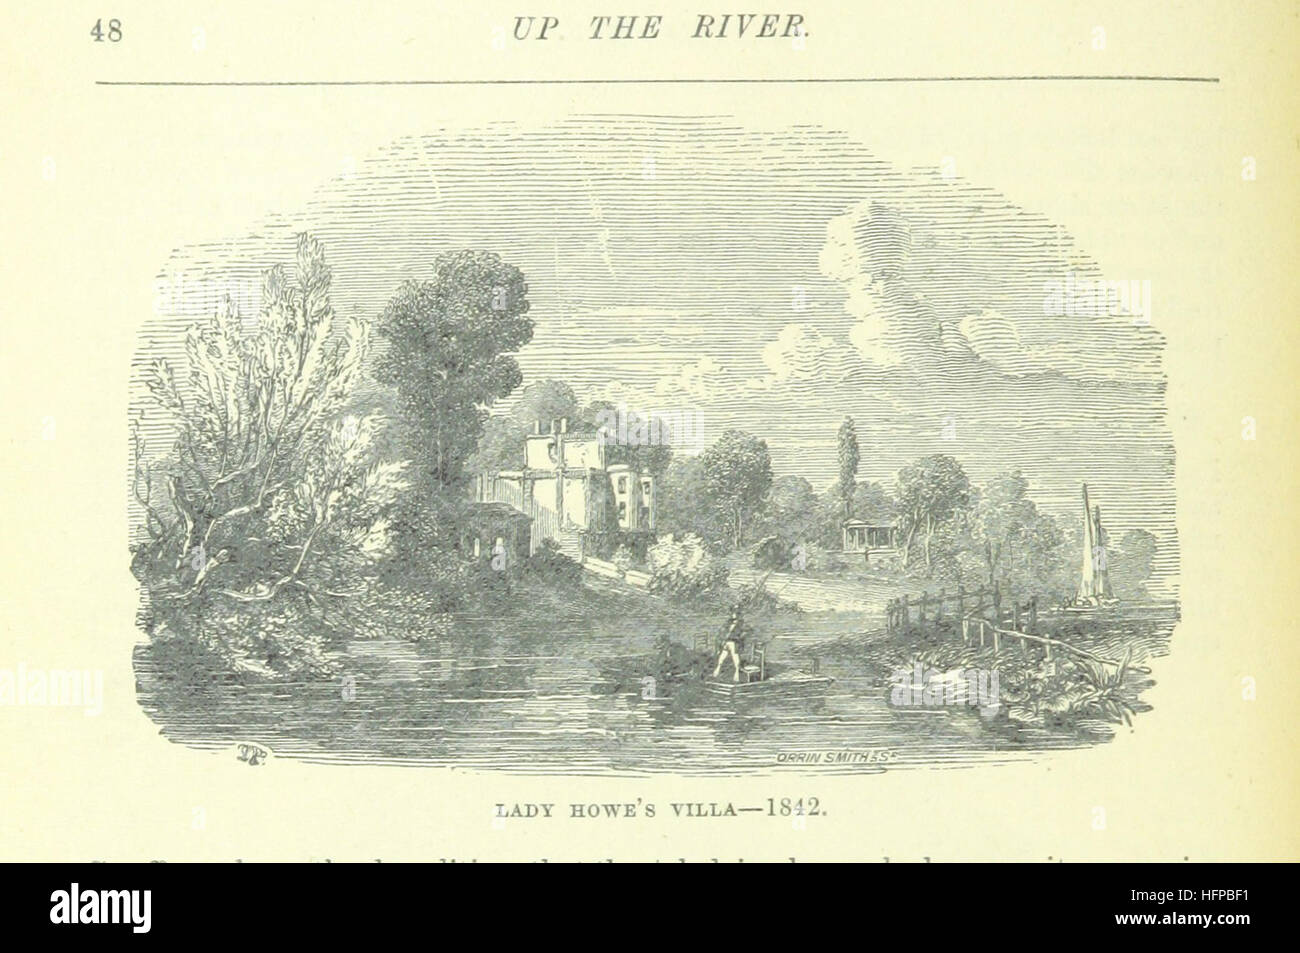 Image taken from page 78 of 'Up the River from Westminster to Windsor and Oxford; a descriptive panorama of - Stock Image